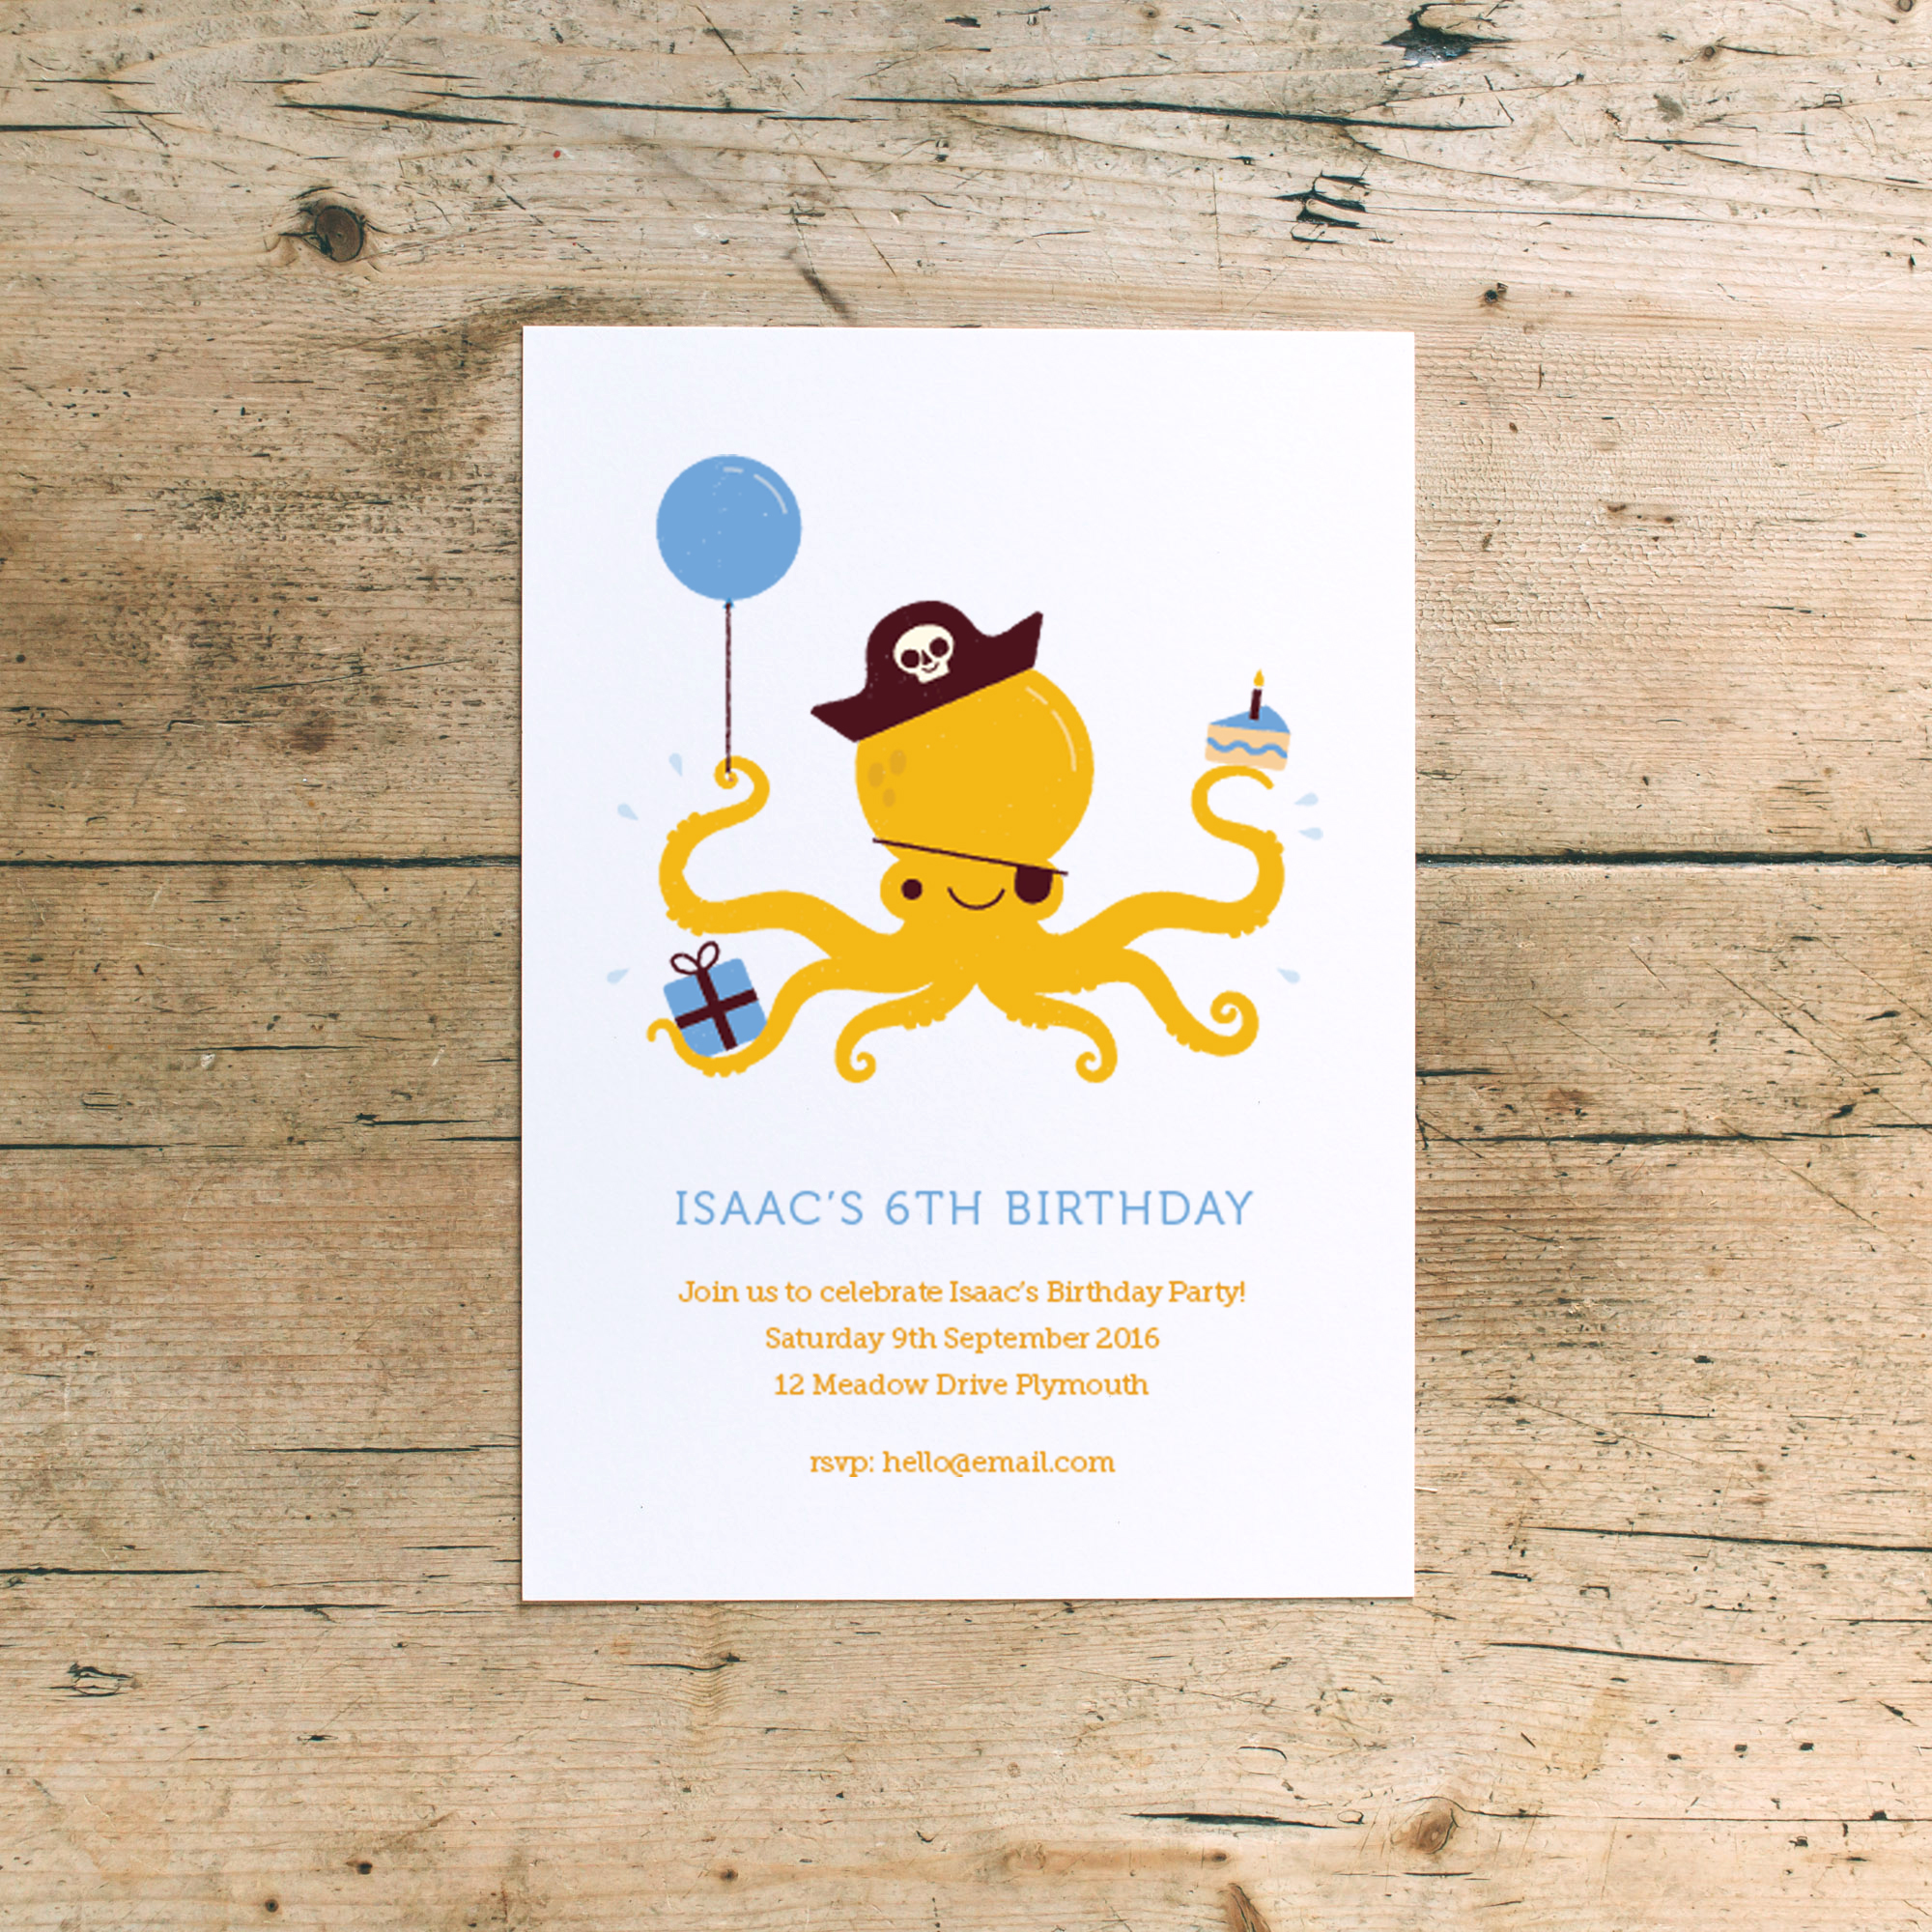 'Pirate Fun' Birthday Party Invitations  available from  notonthehighstreet.com